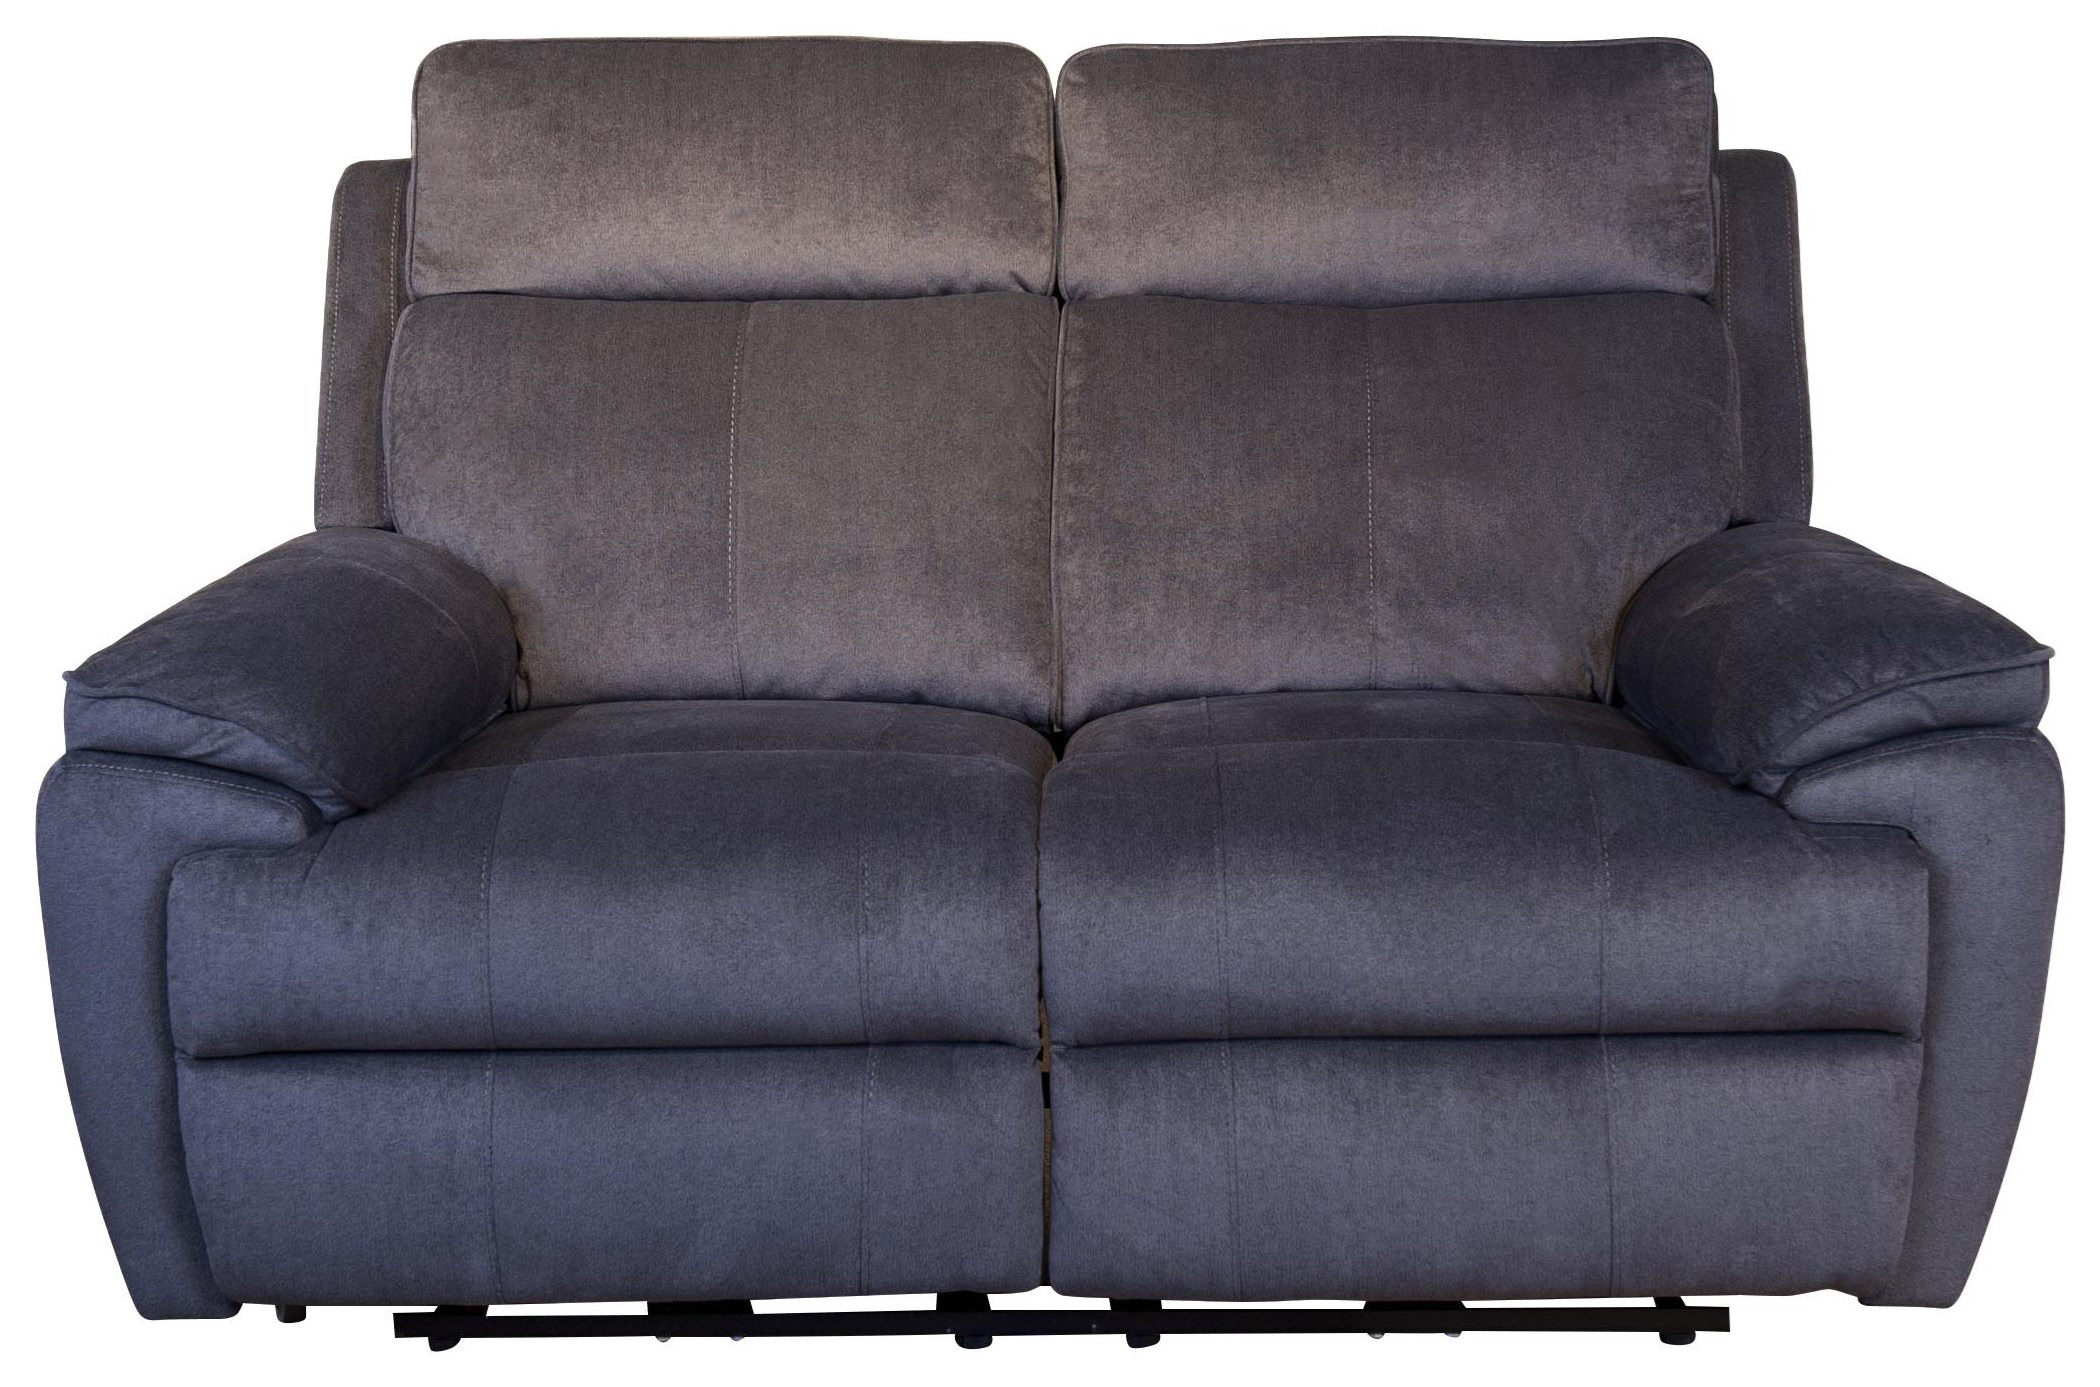 Brett Brett Dual Power Reclining Loveseat by Abbyson at Morris Home